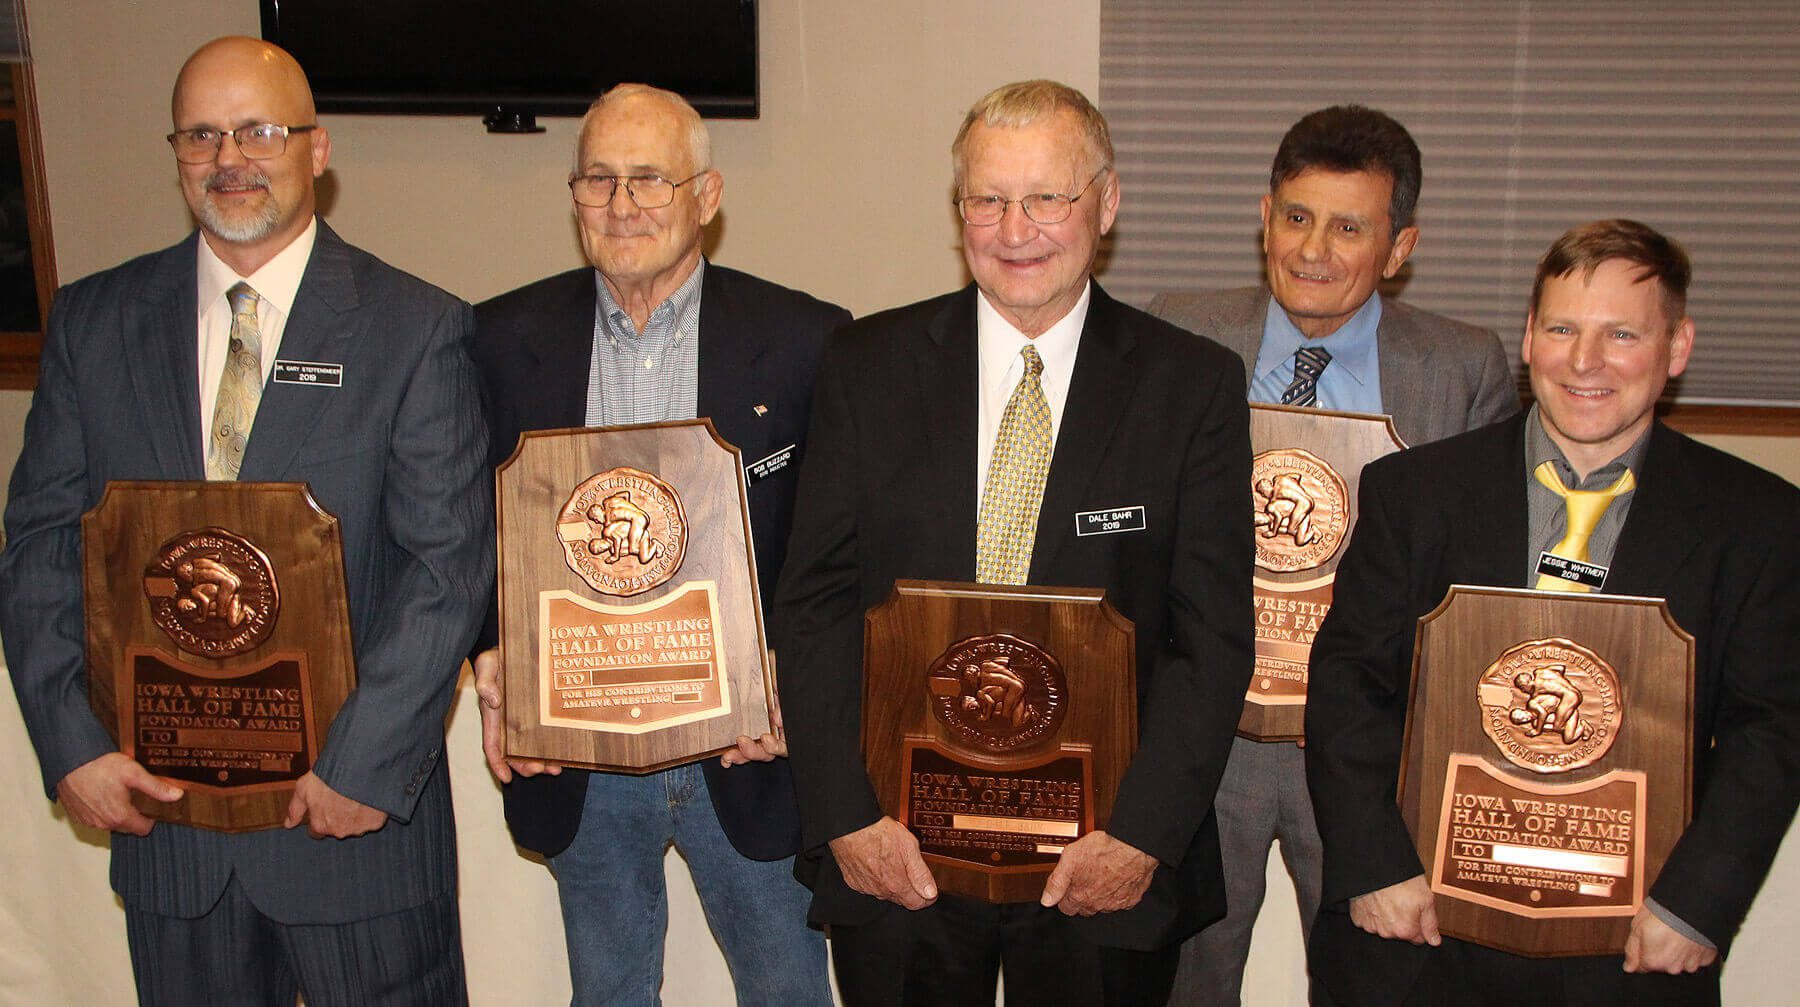 2019 Inductees Steffensmeier, Buzzard, Bahr, Corso, and Whitmer with plaques